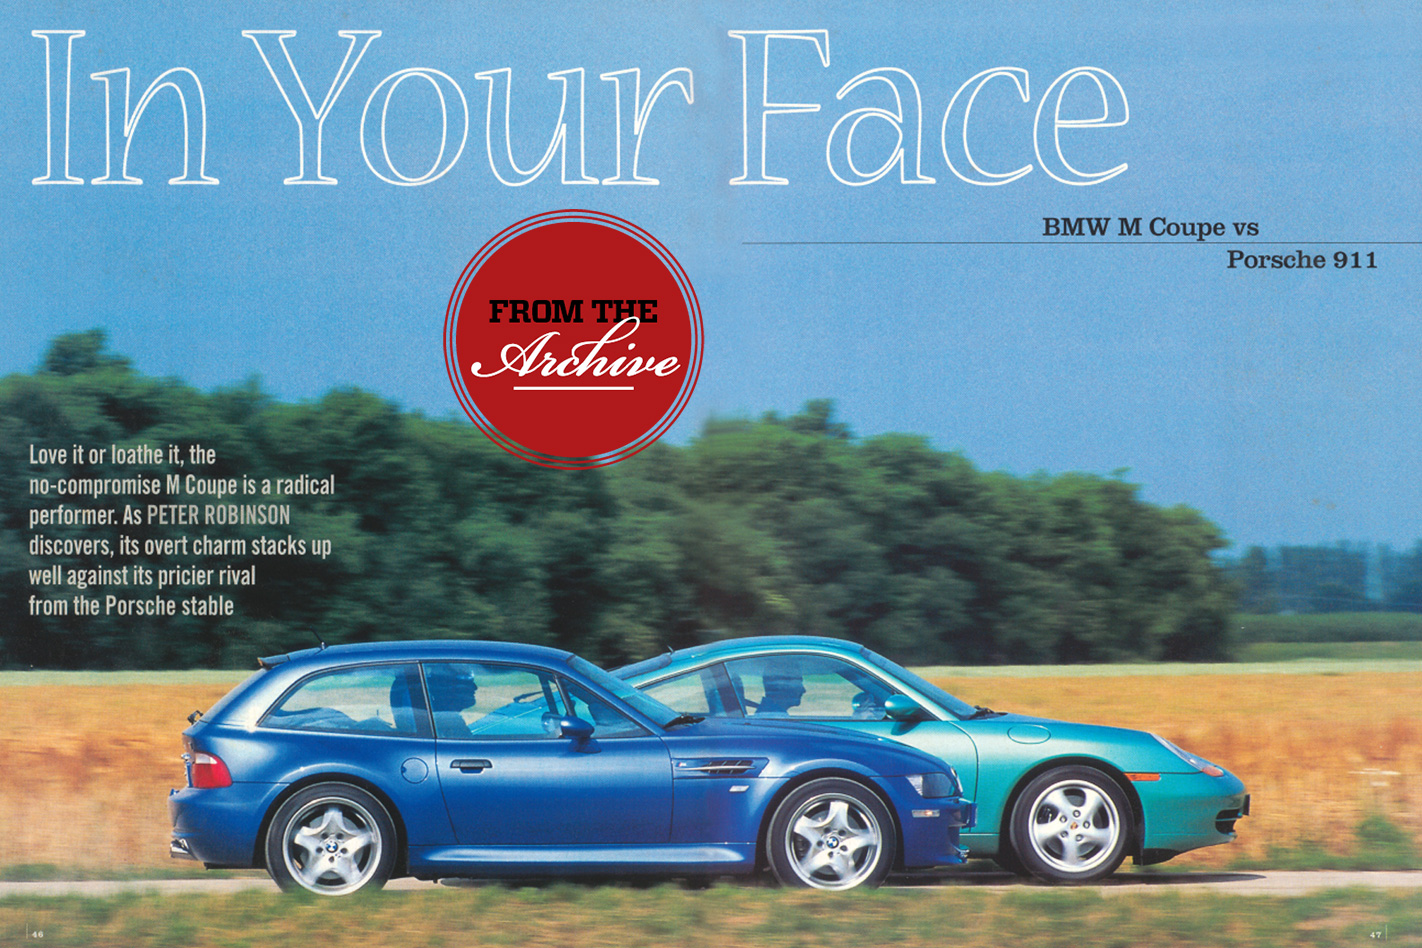 Archive Bmw M Coupe V Porsche 911 Comparison Review